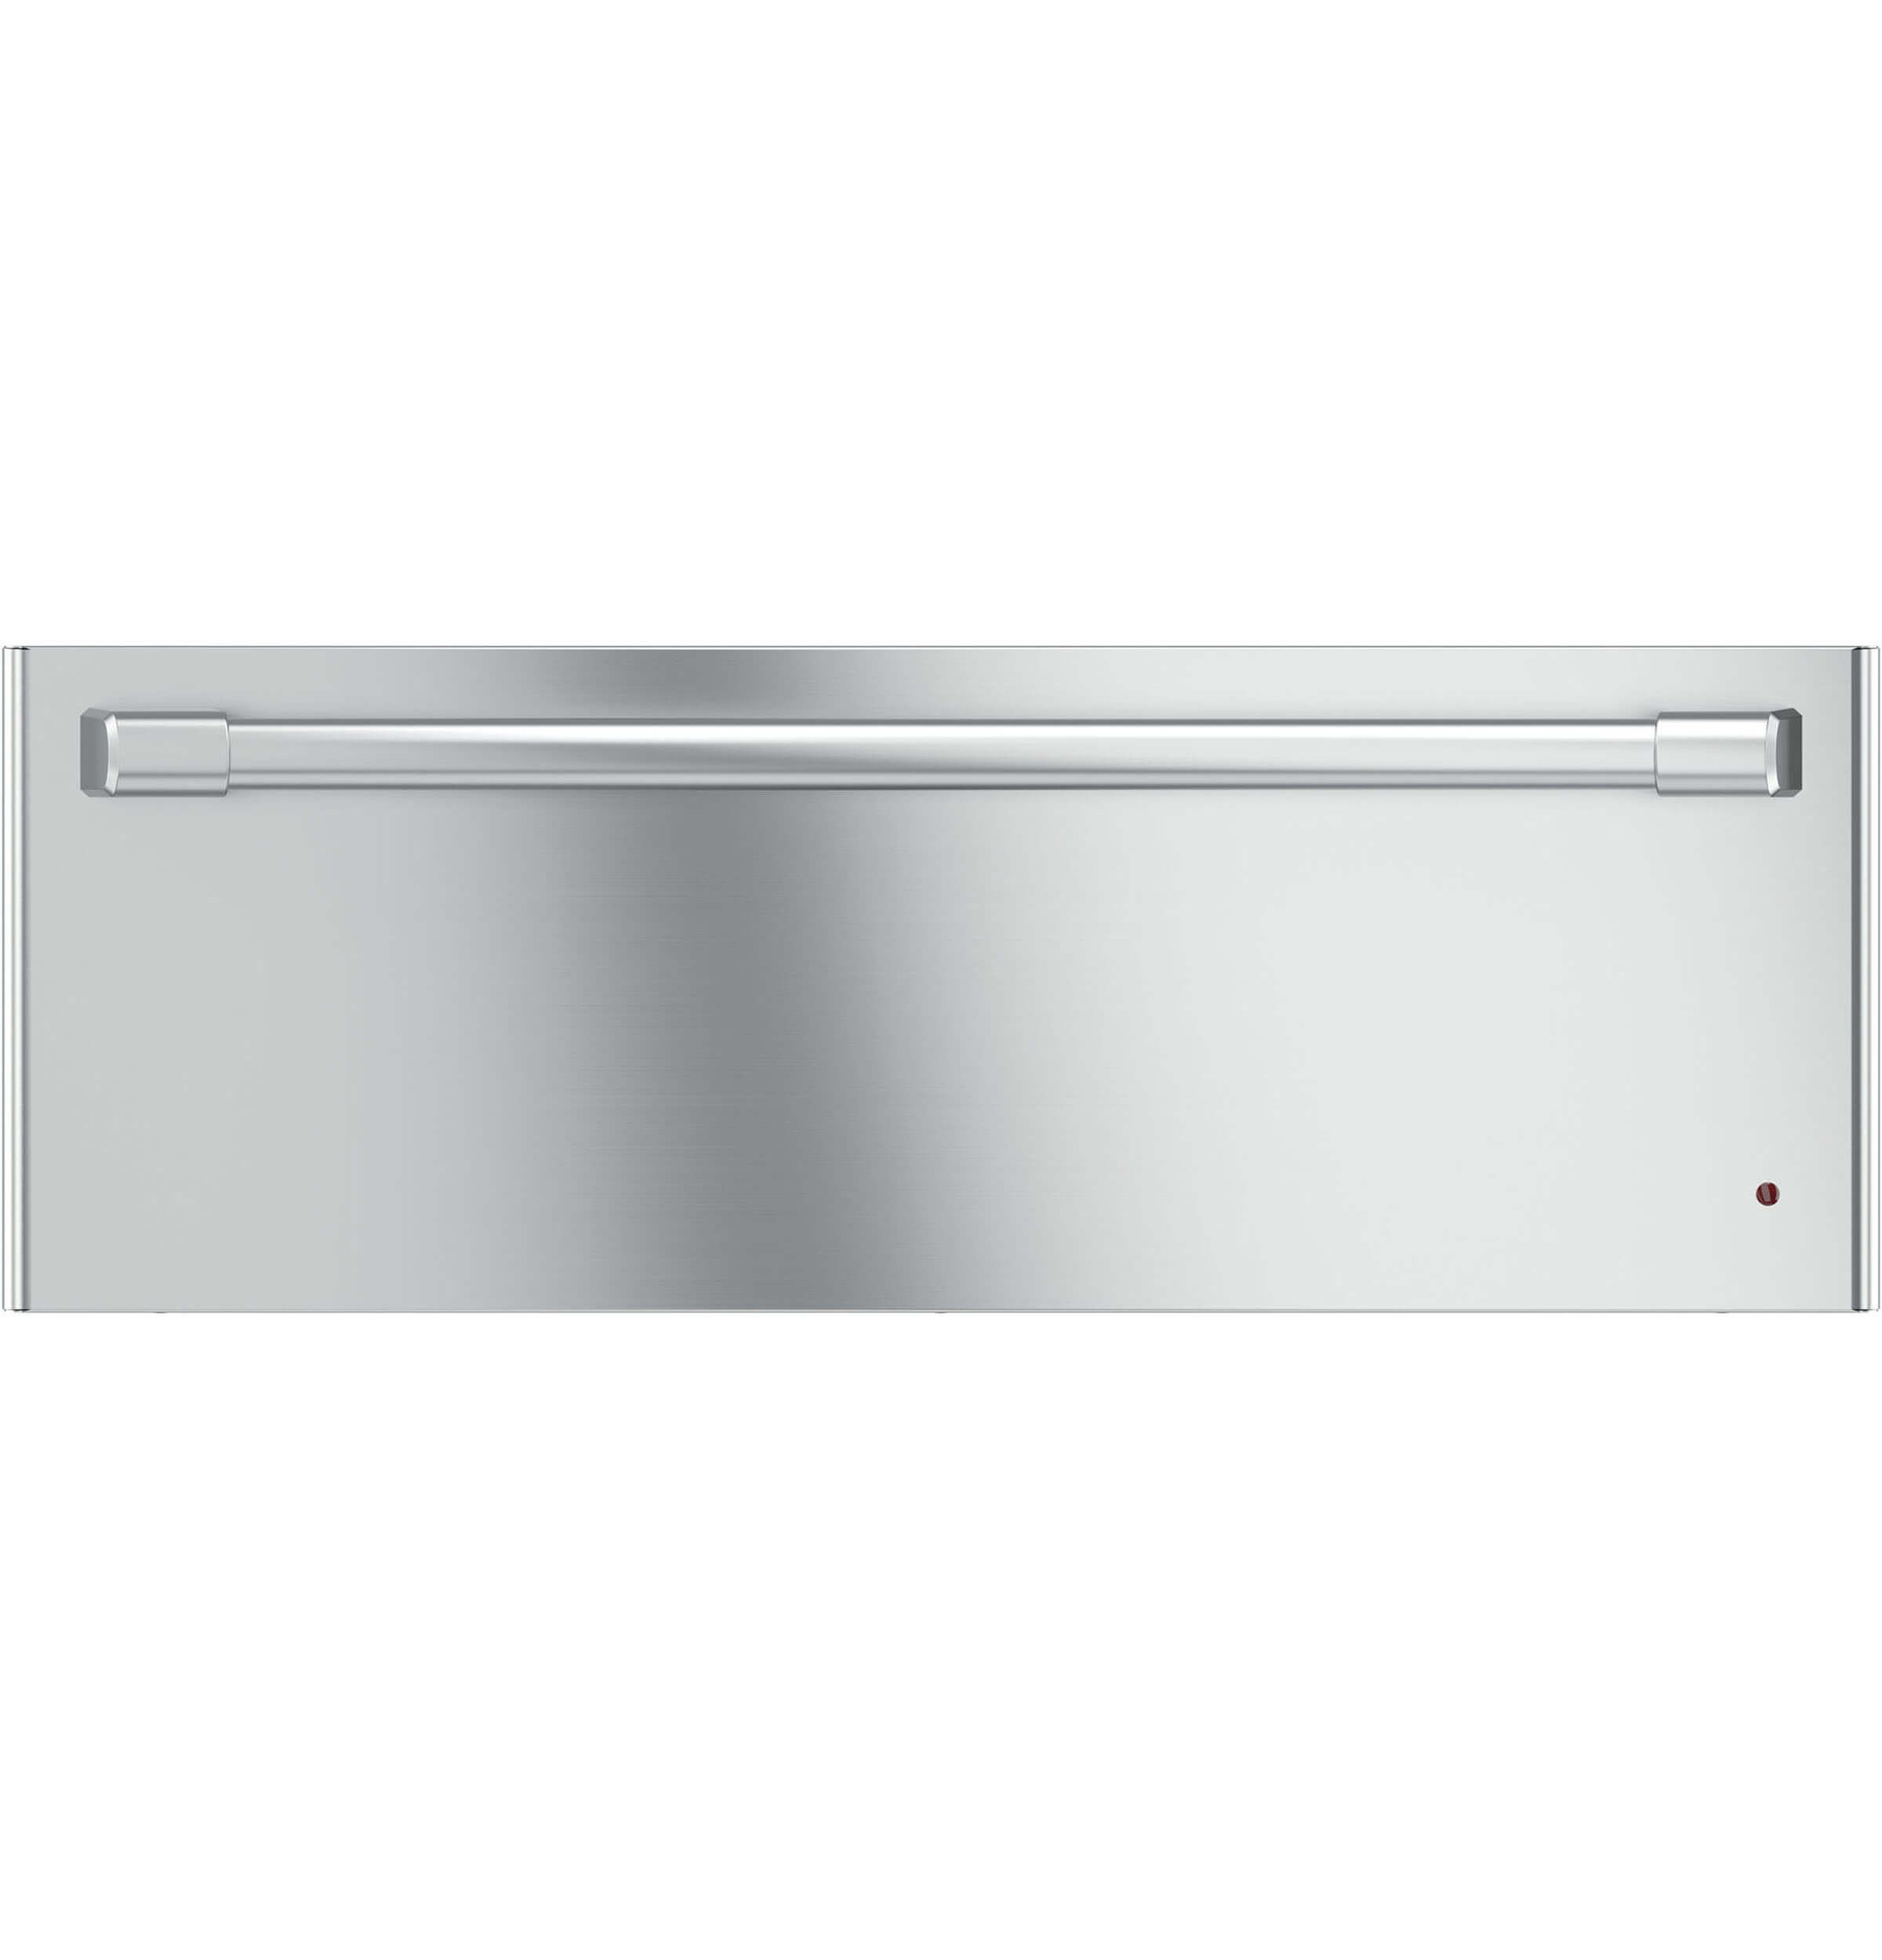 Stainless Steel Cafe Series 30 inch Warming Drawer